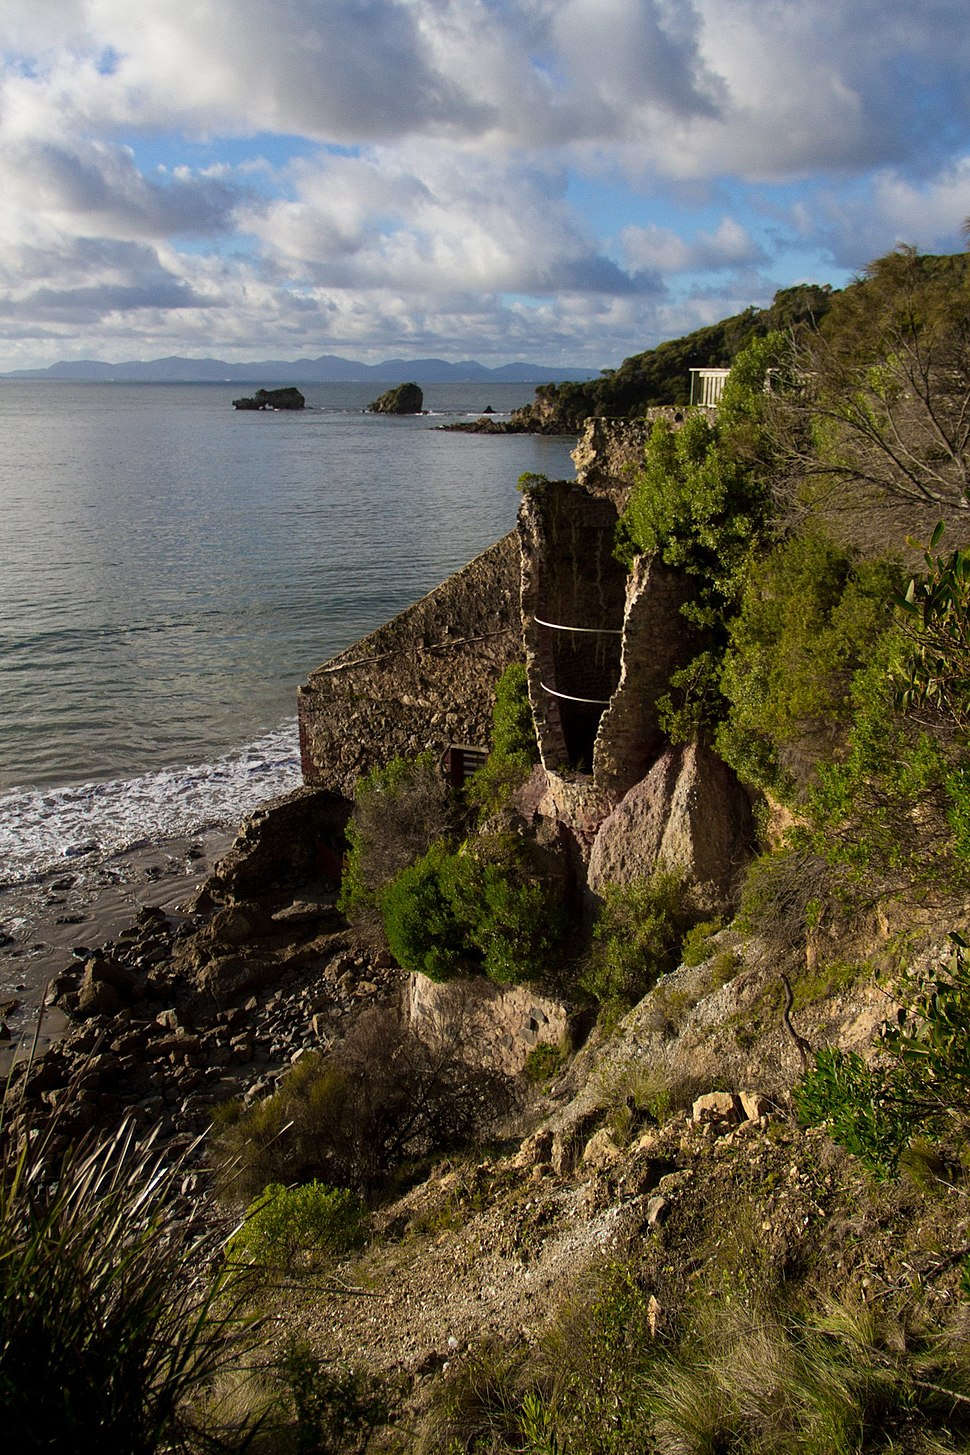 Limestone kiln ruins viewed from Limeburners track at Walkerville, Victoria, Australia